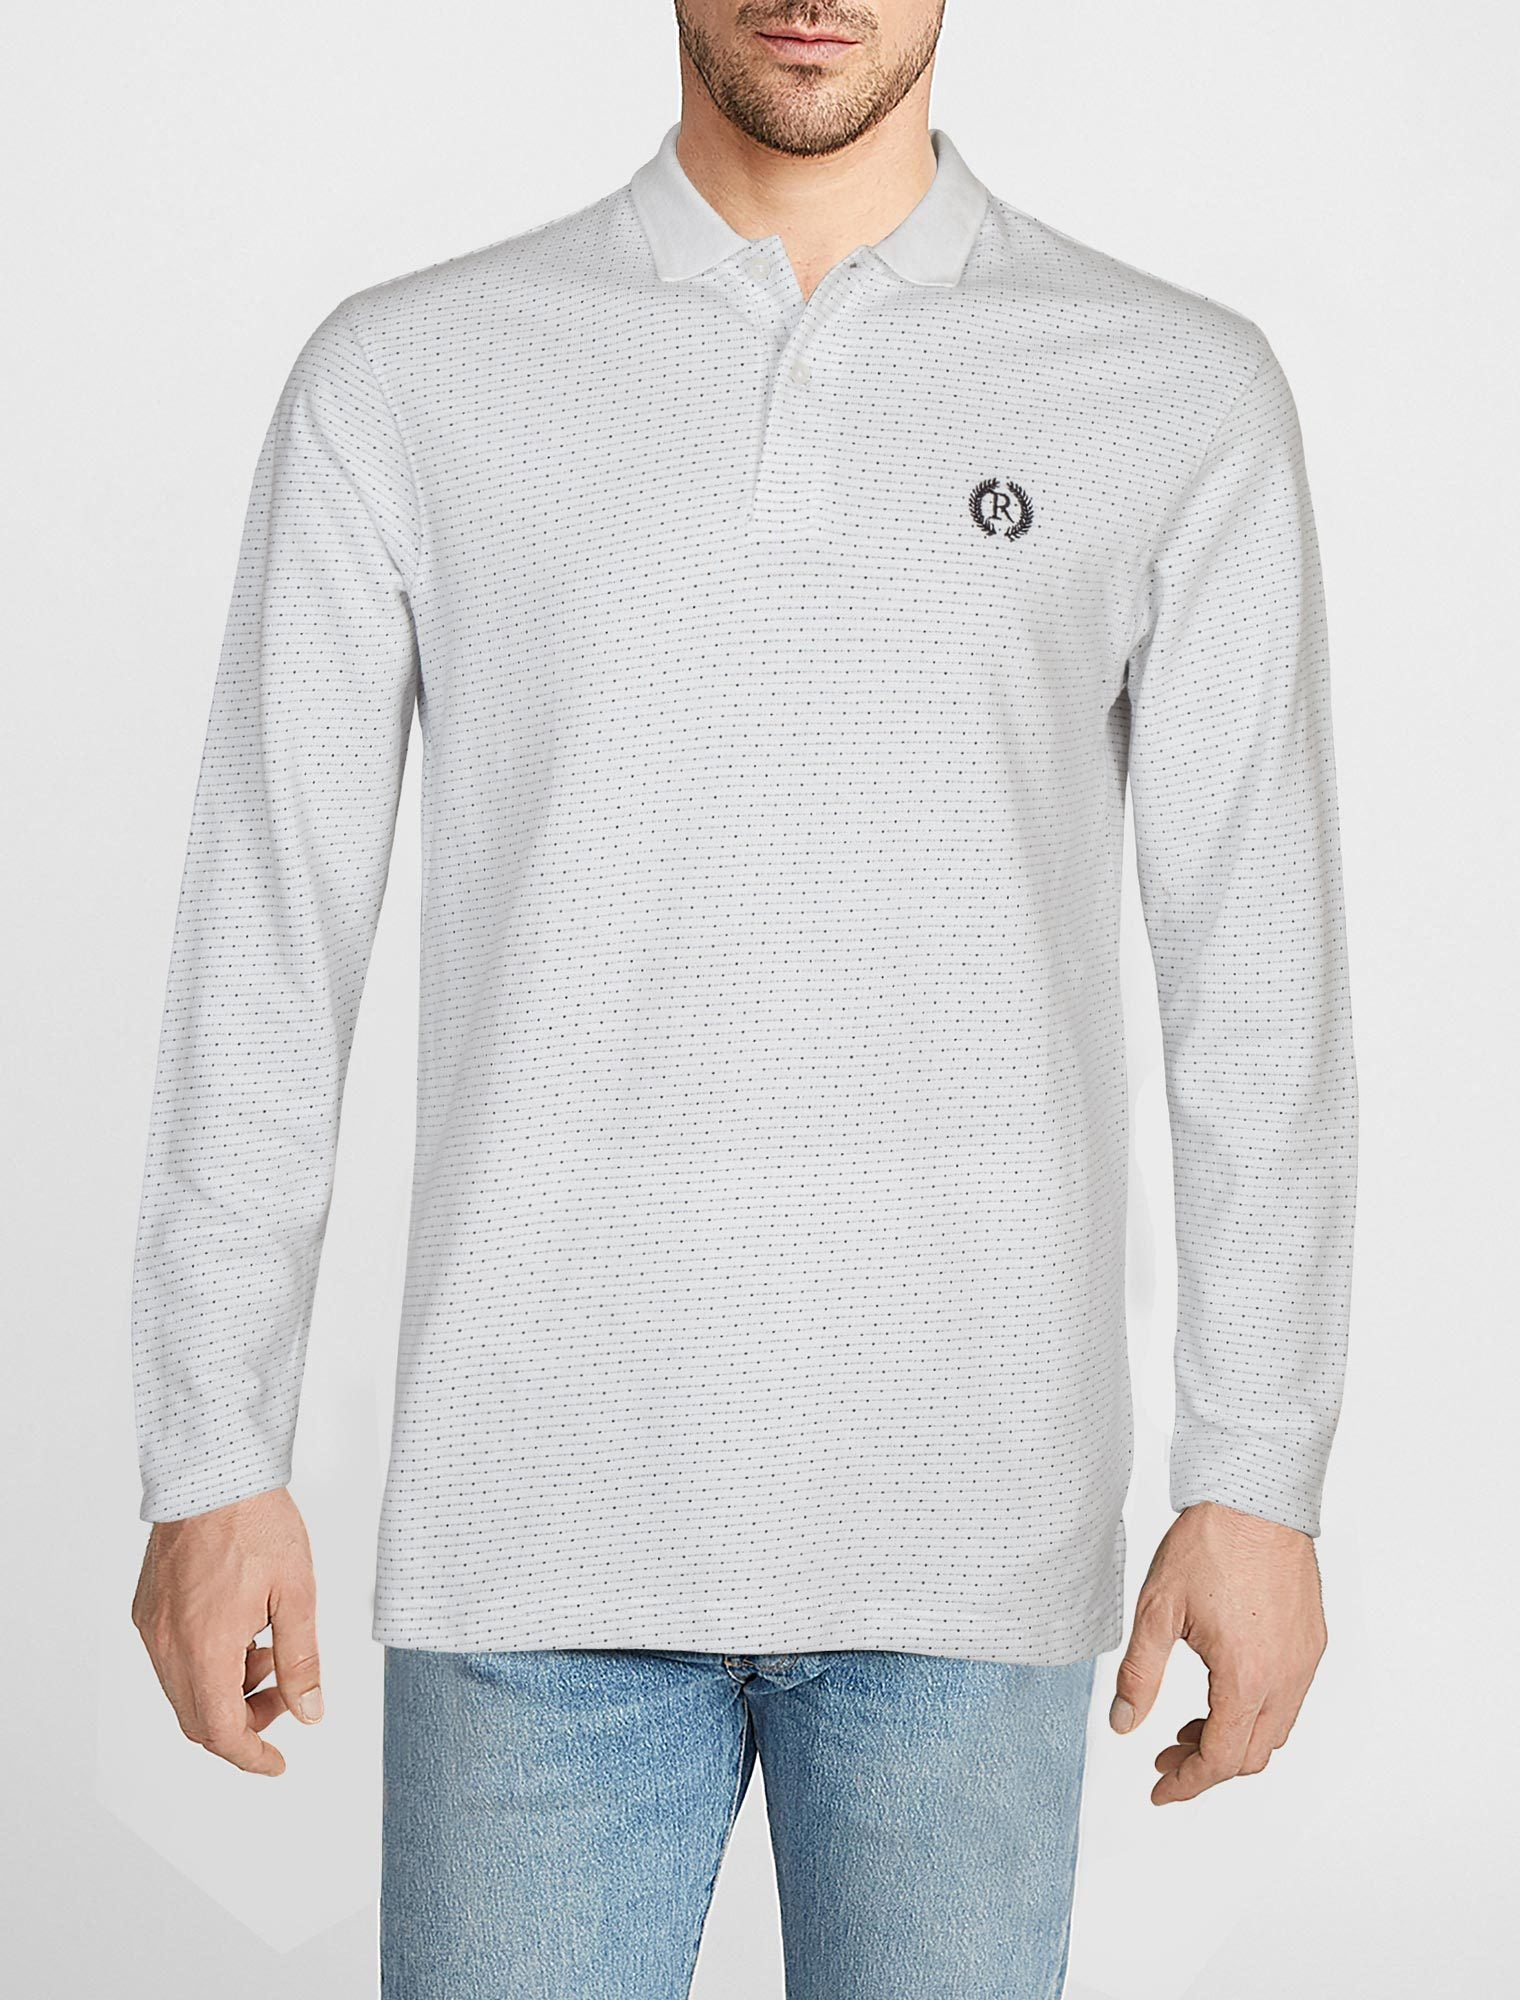 POLO SHIRT F/S RA312-WT